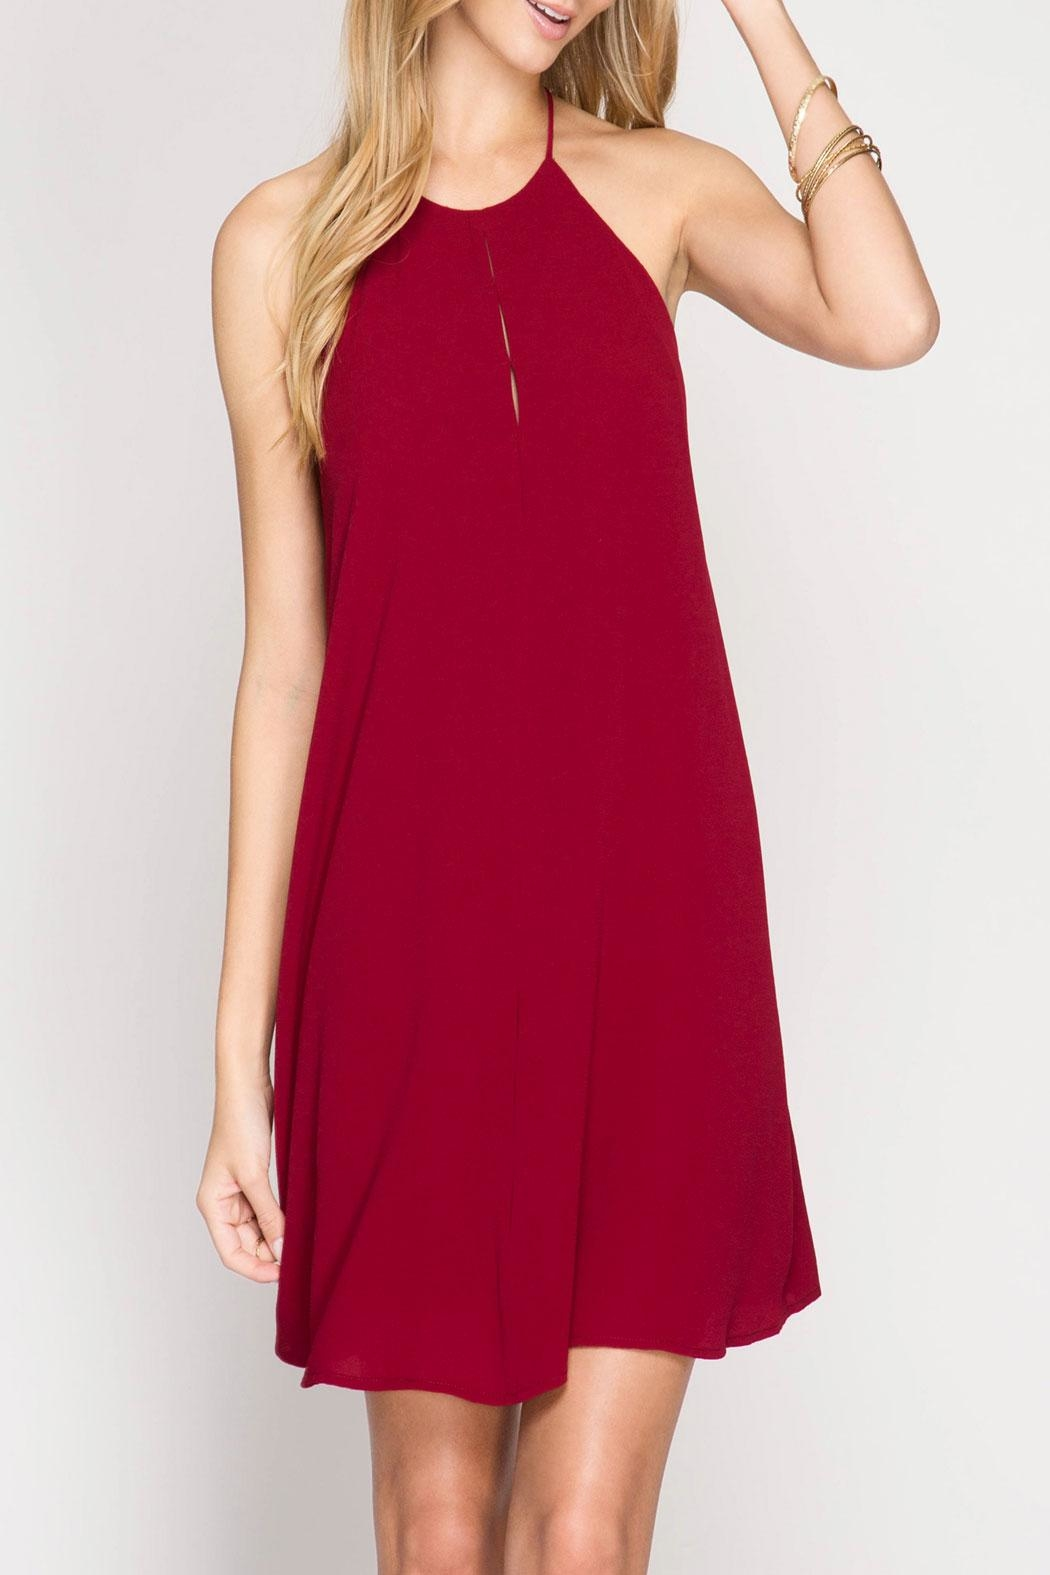 She + Sky Red High Neck Dress - Main Image